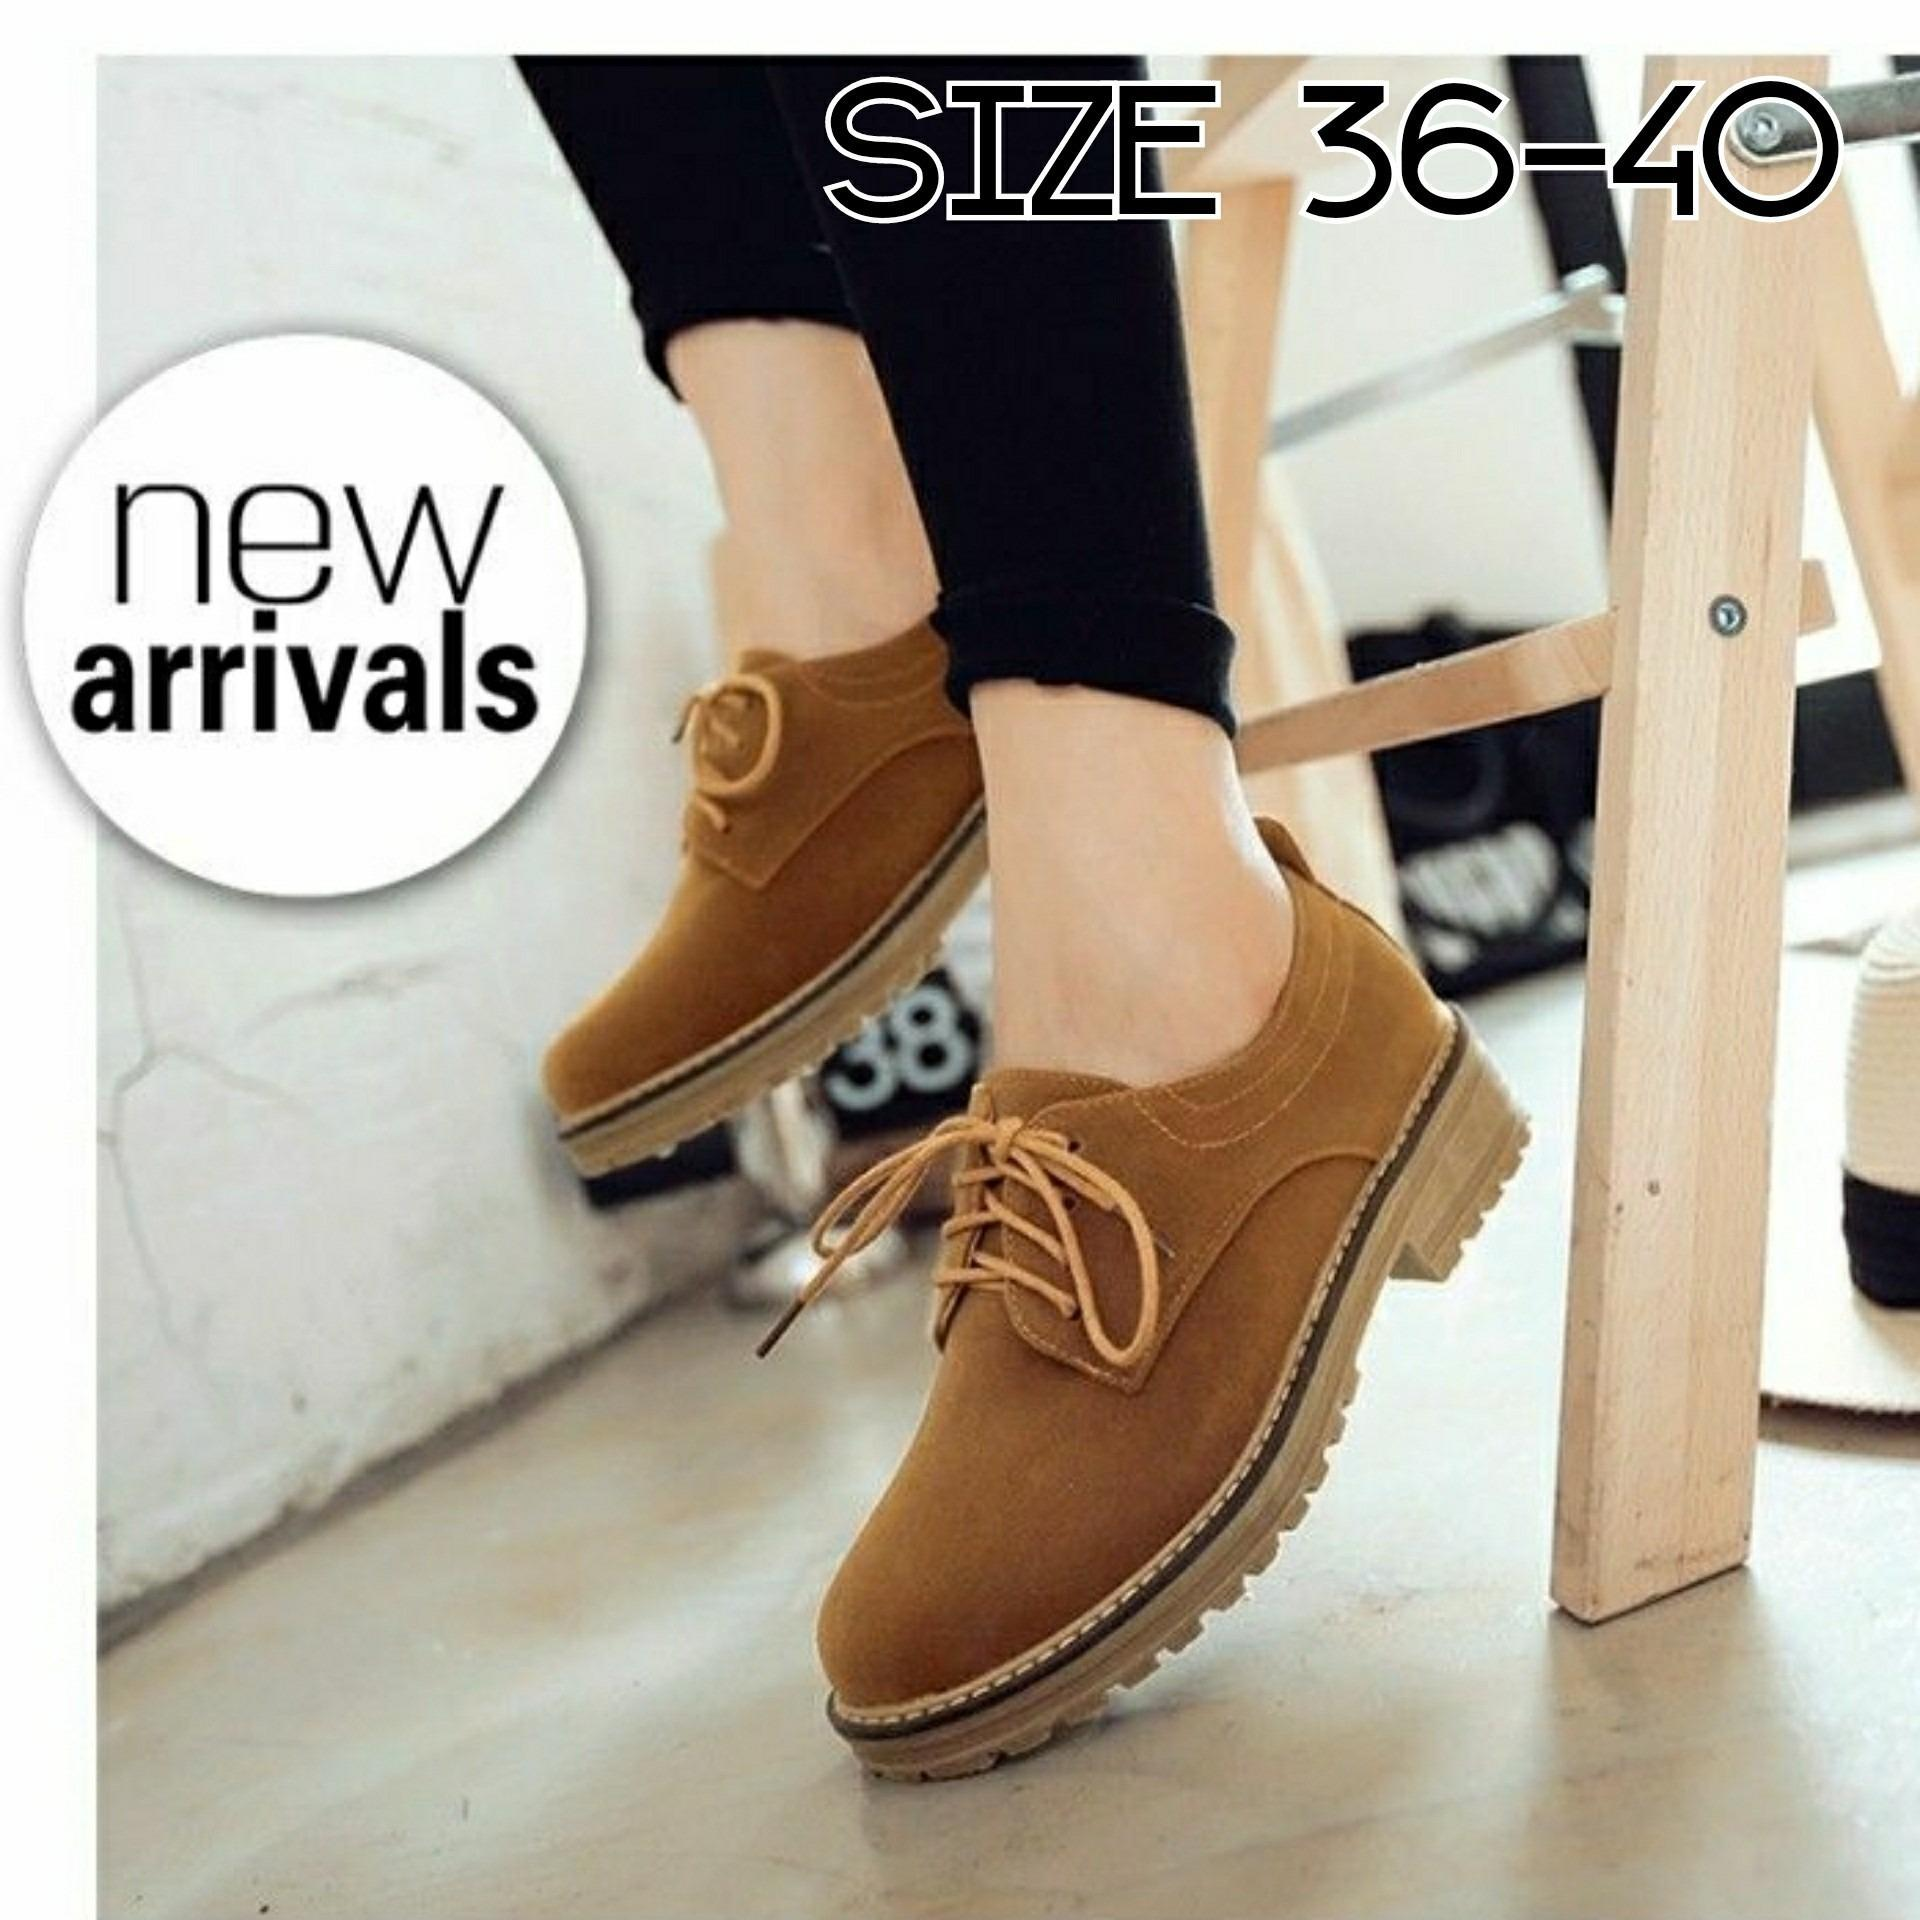 Sepatu Archives Page 230 Of 235 Boot High Heels Ls09 M Boots Wanita New Arrival